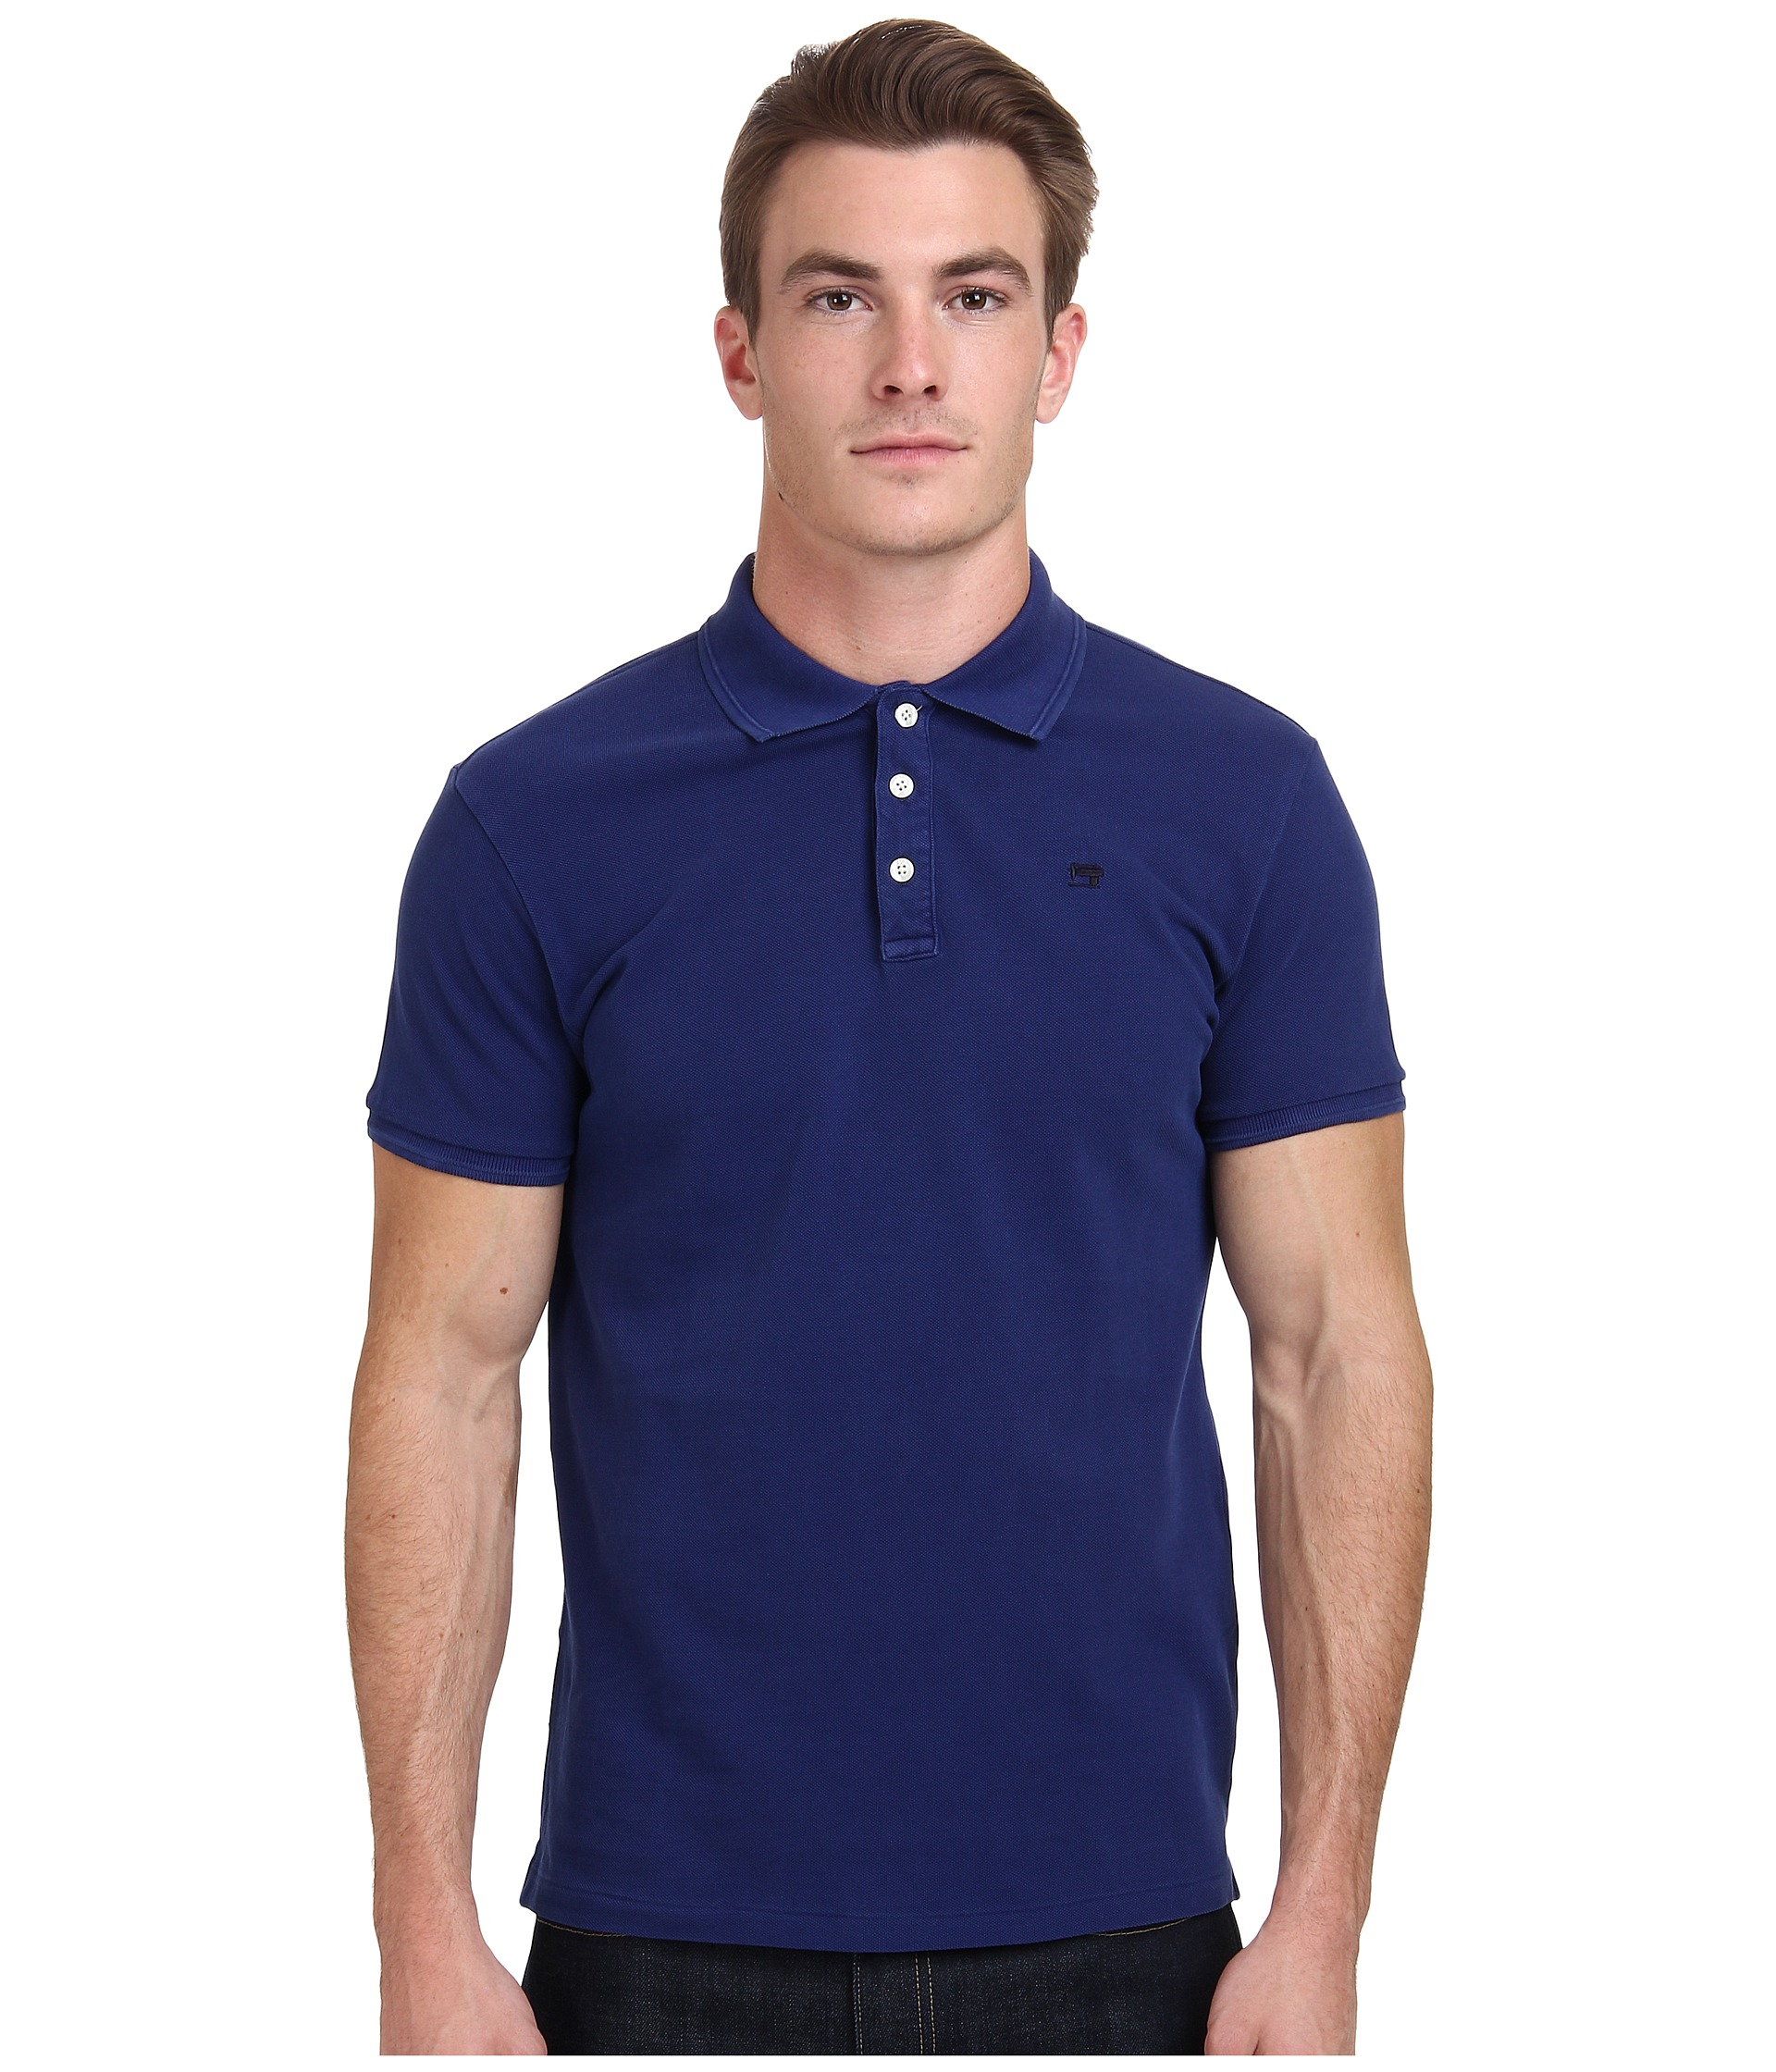 lyst scotch soda classic pique polo in blue for men. Black Bedroom Furniture Sets. Home Design Ideas